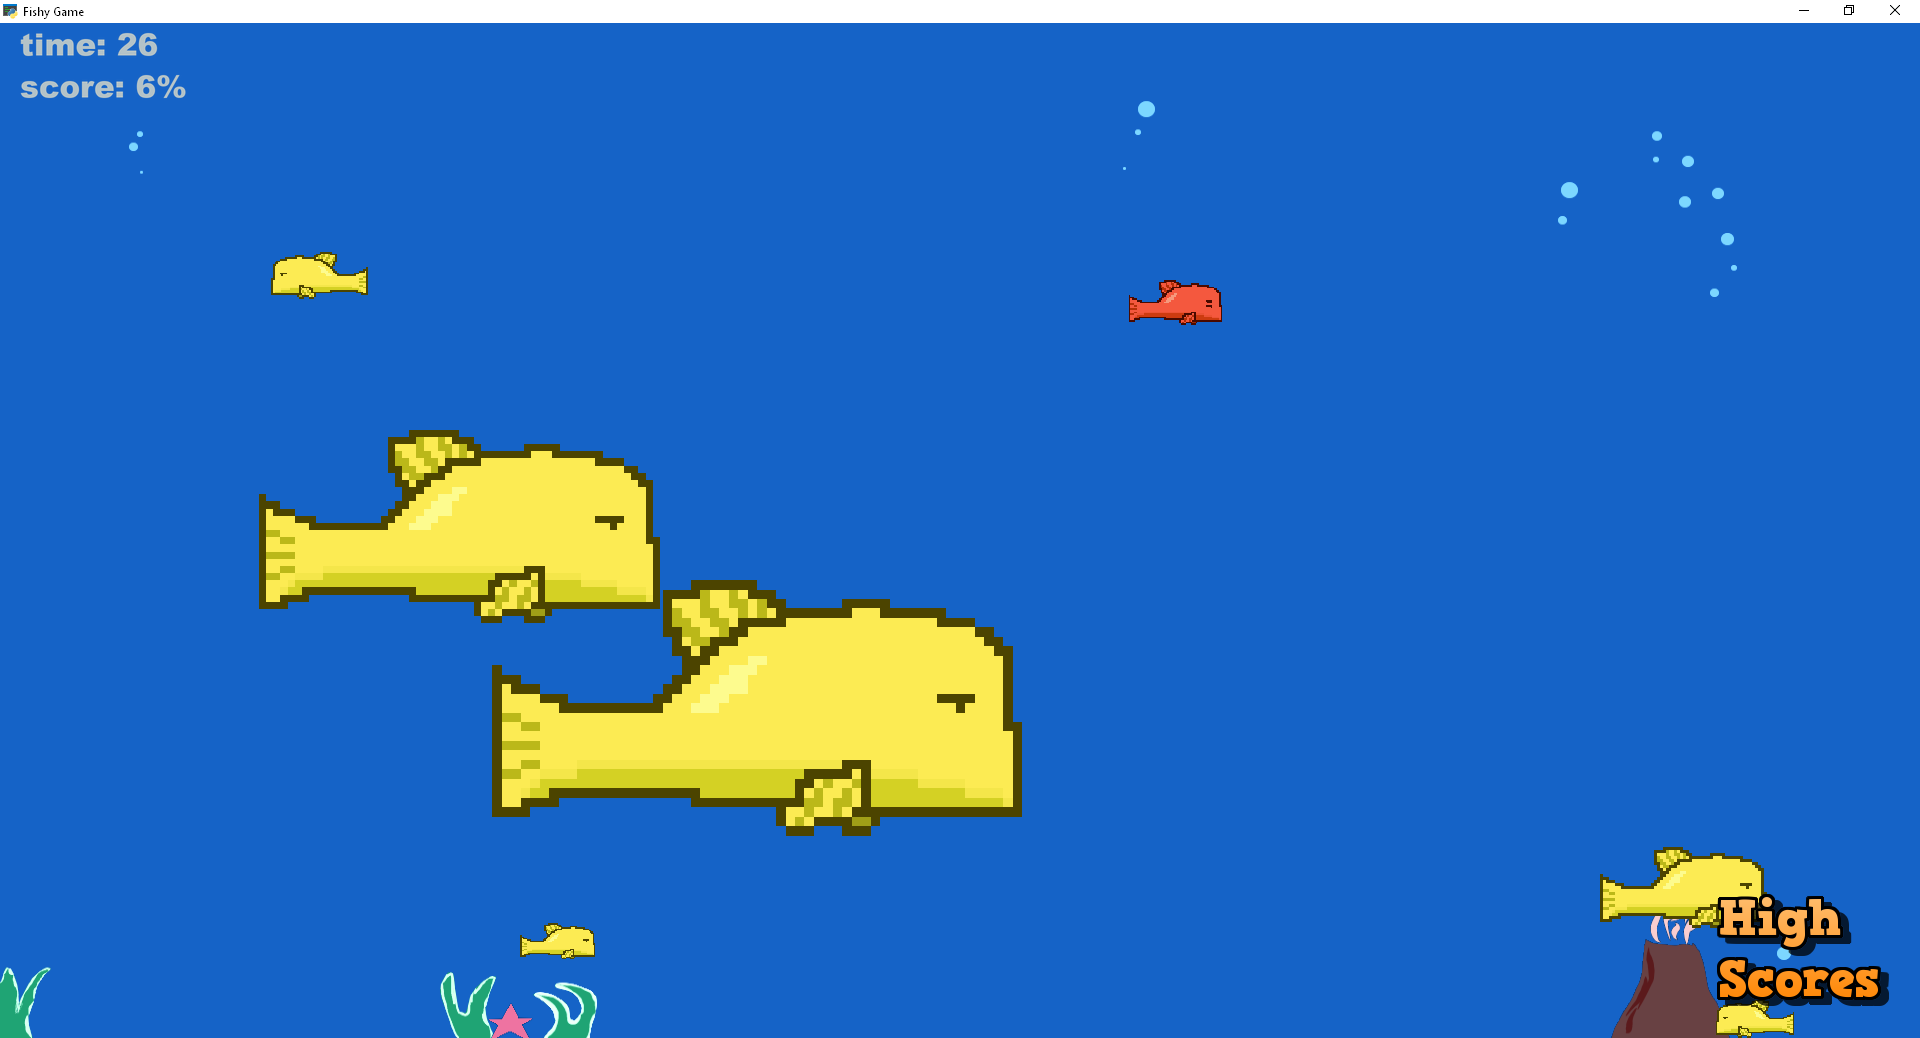 https://raw.githubusercontent.com/LiorAvrahami/fishy-game/main/example%20image.png